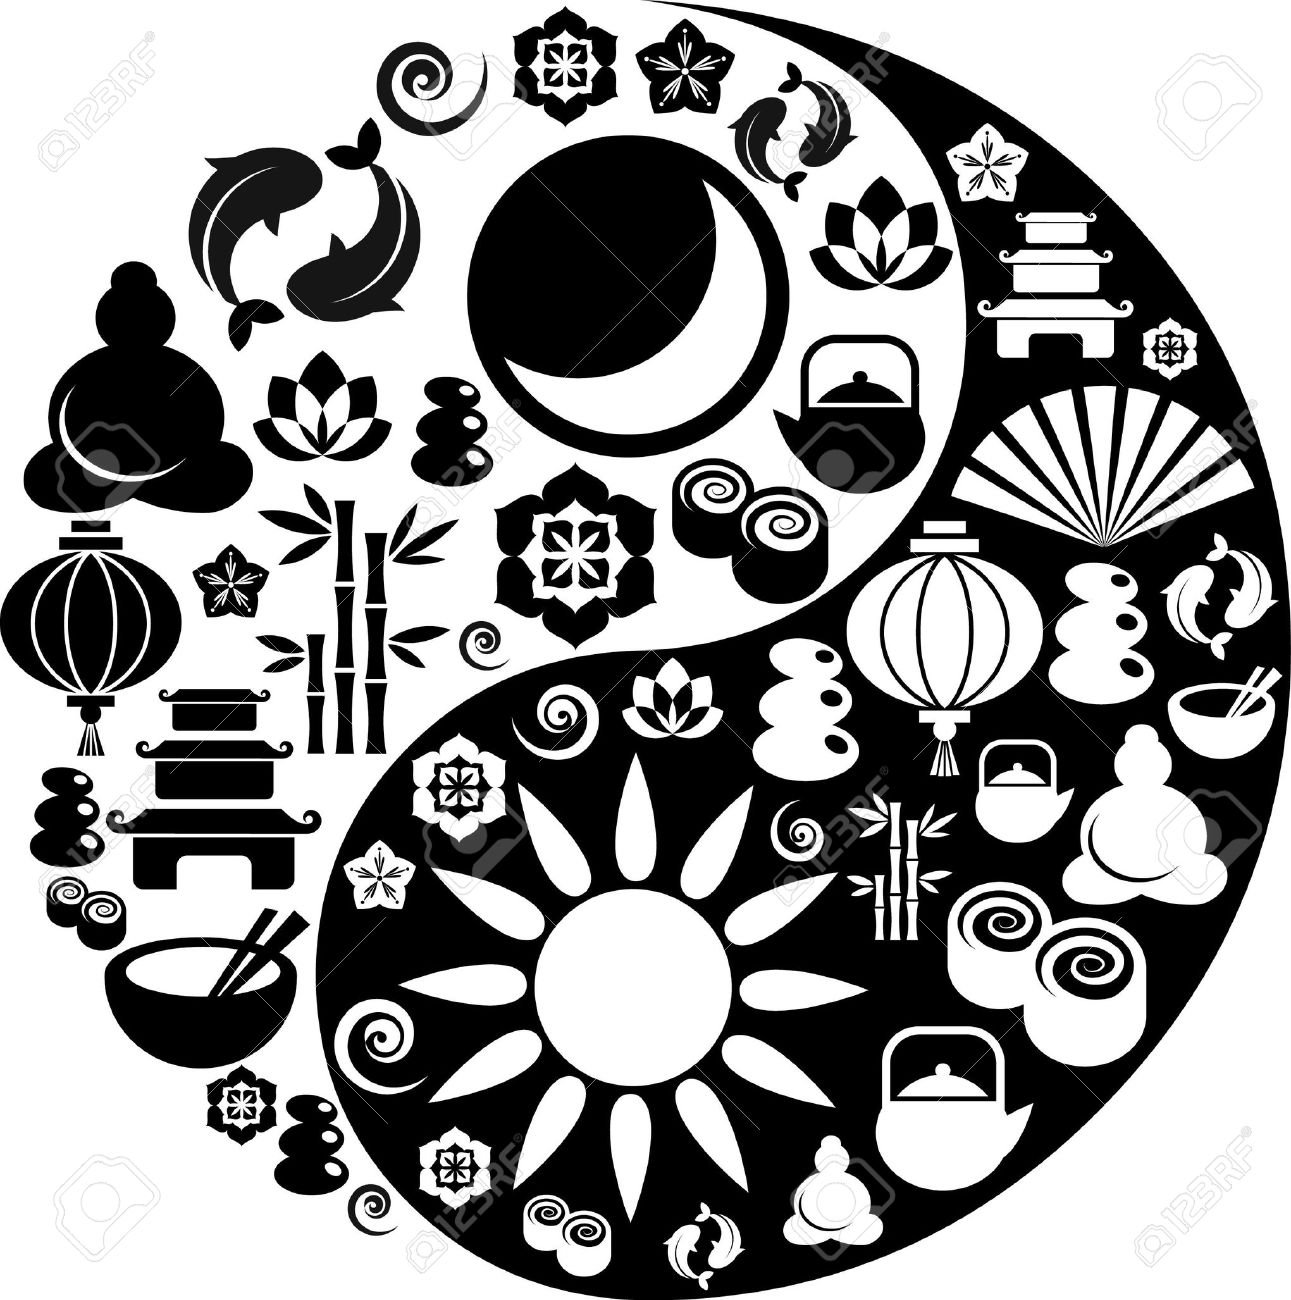 Clipart oriental gratuit clip art freeuse download Black And White Vector Yin-Yang With Collection Of Zen And ... clip art freeuse download